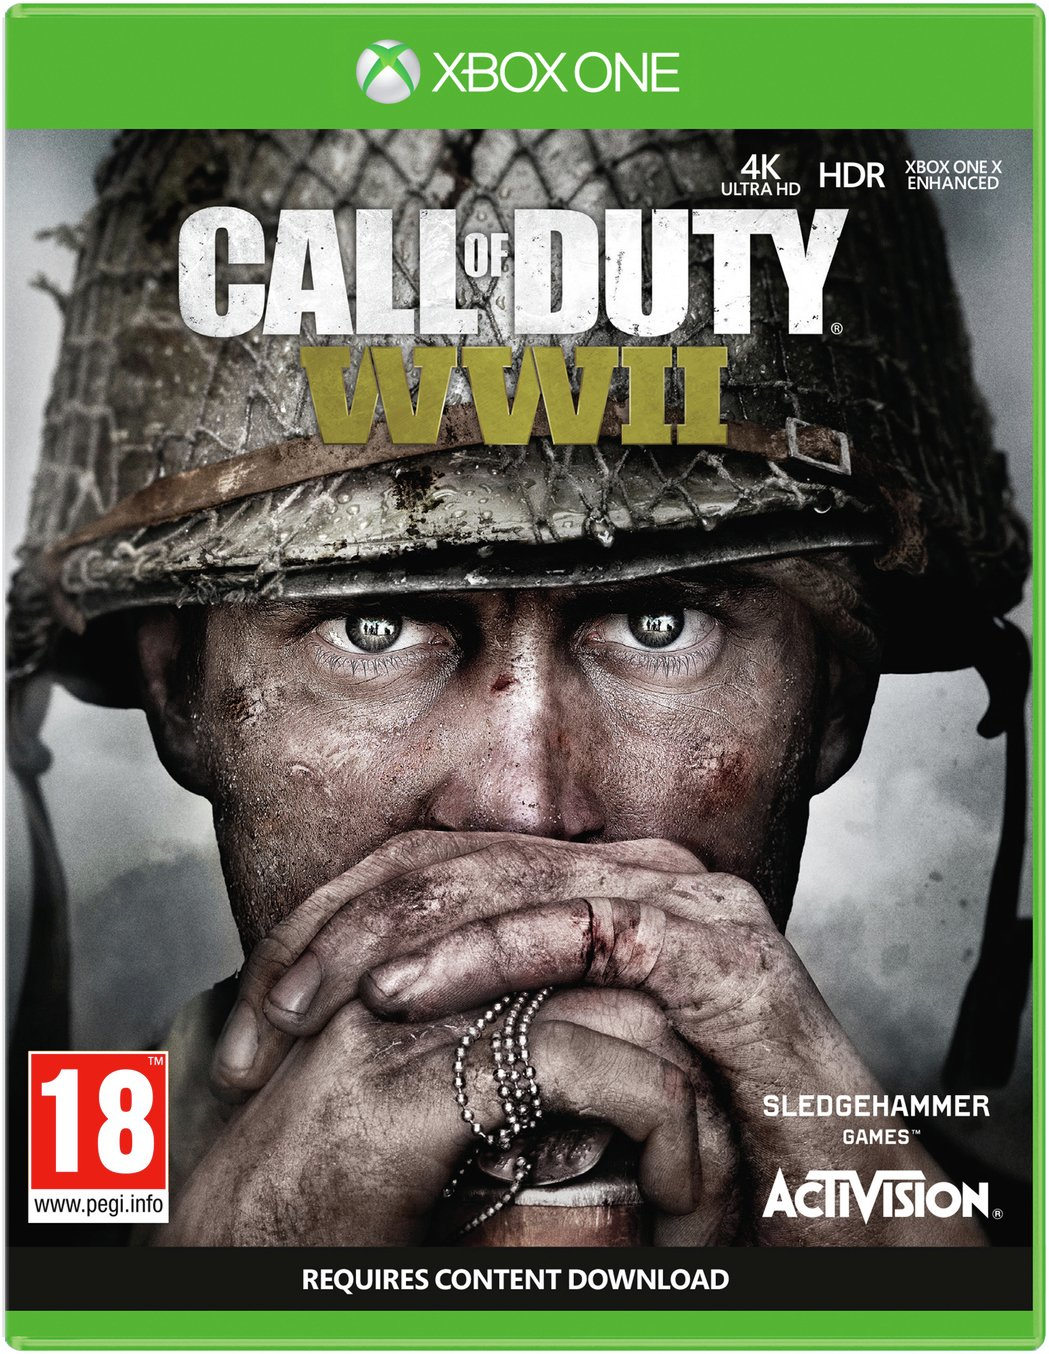 Image of Call of Duty WWII Xbox One Game